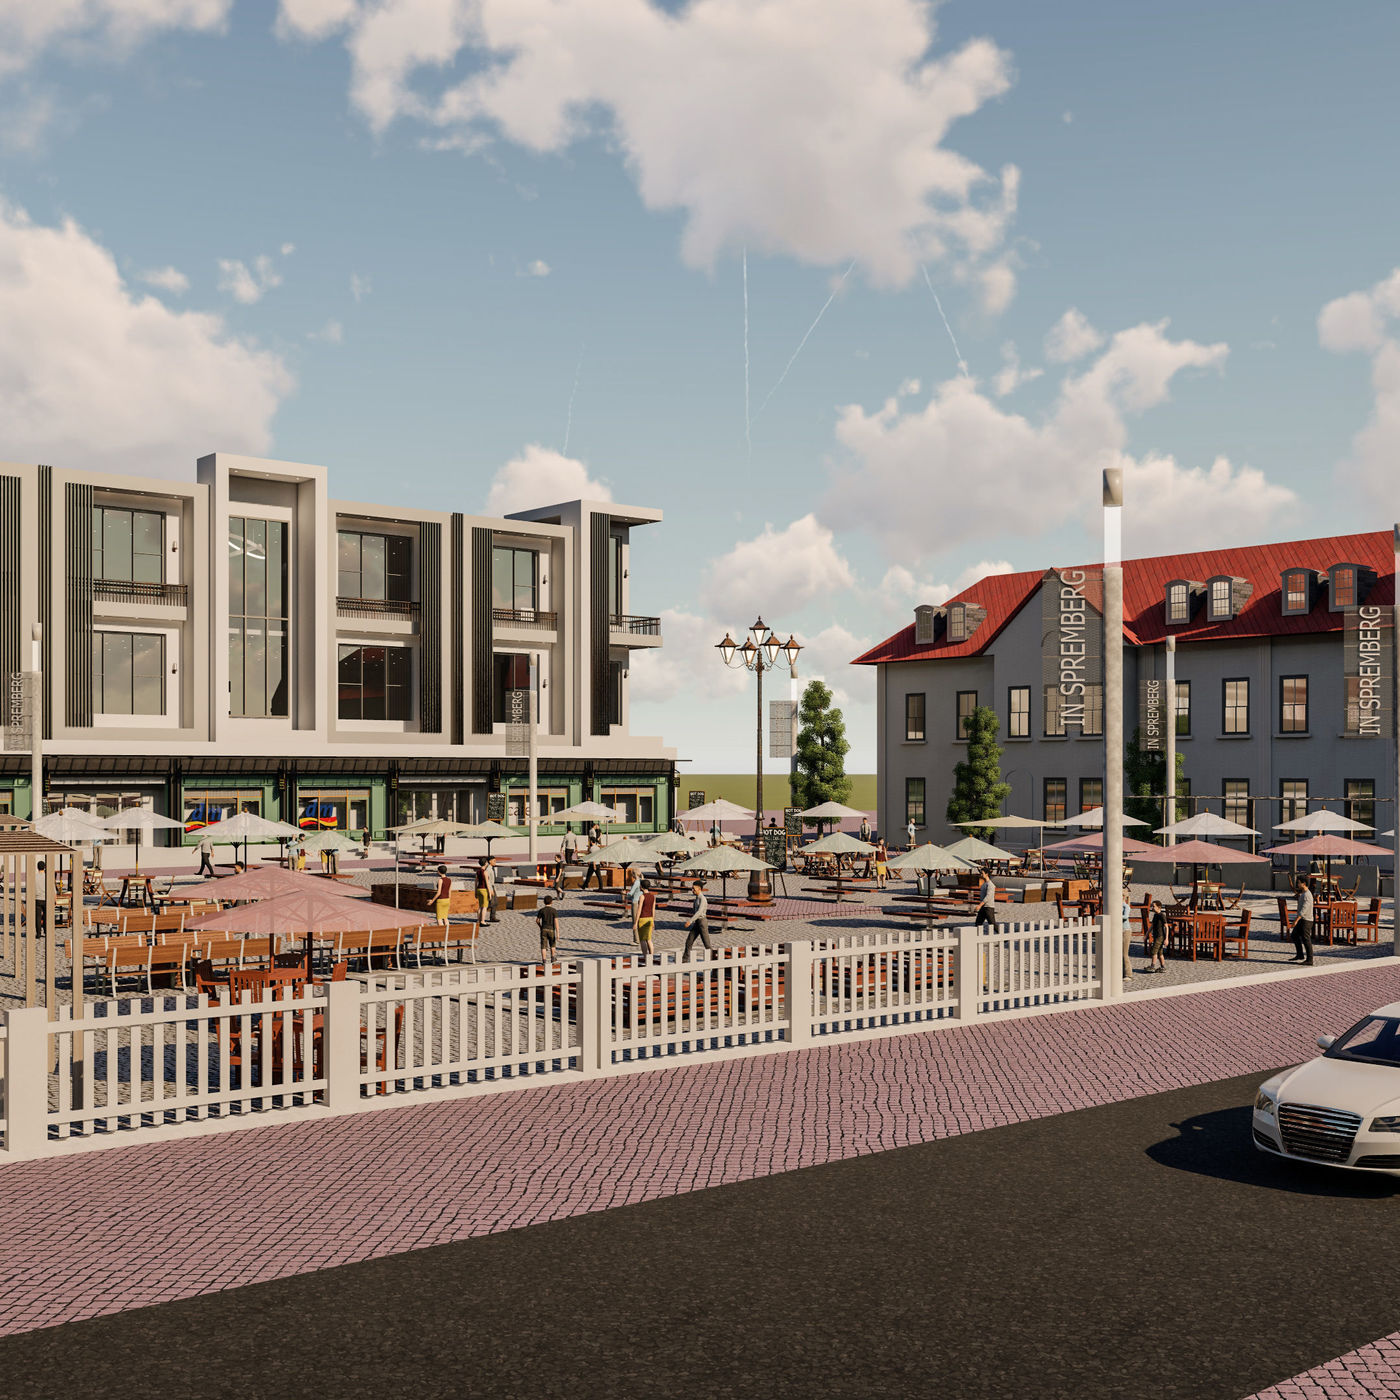 Shop appartment building in town hall of spermbreg renovation and render in lumion 8.5 pro